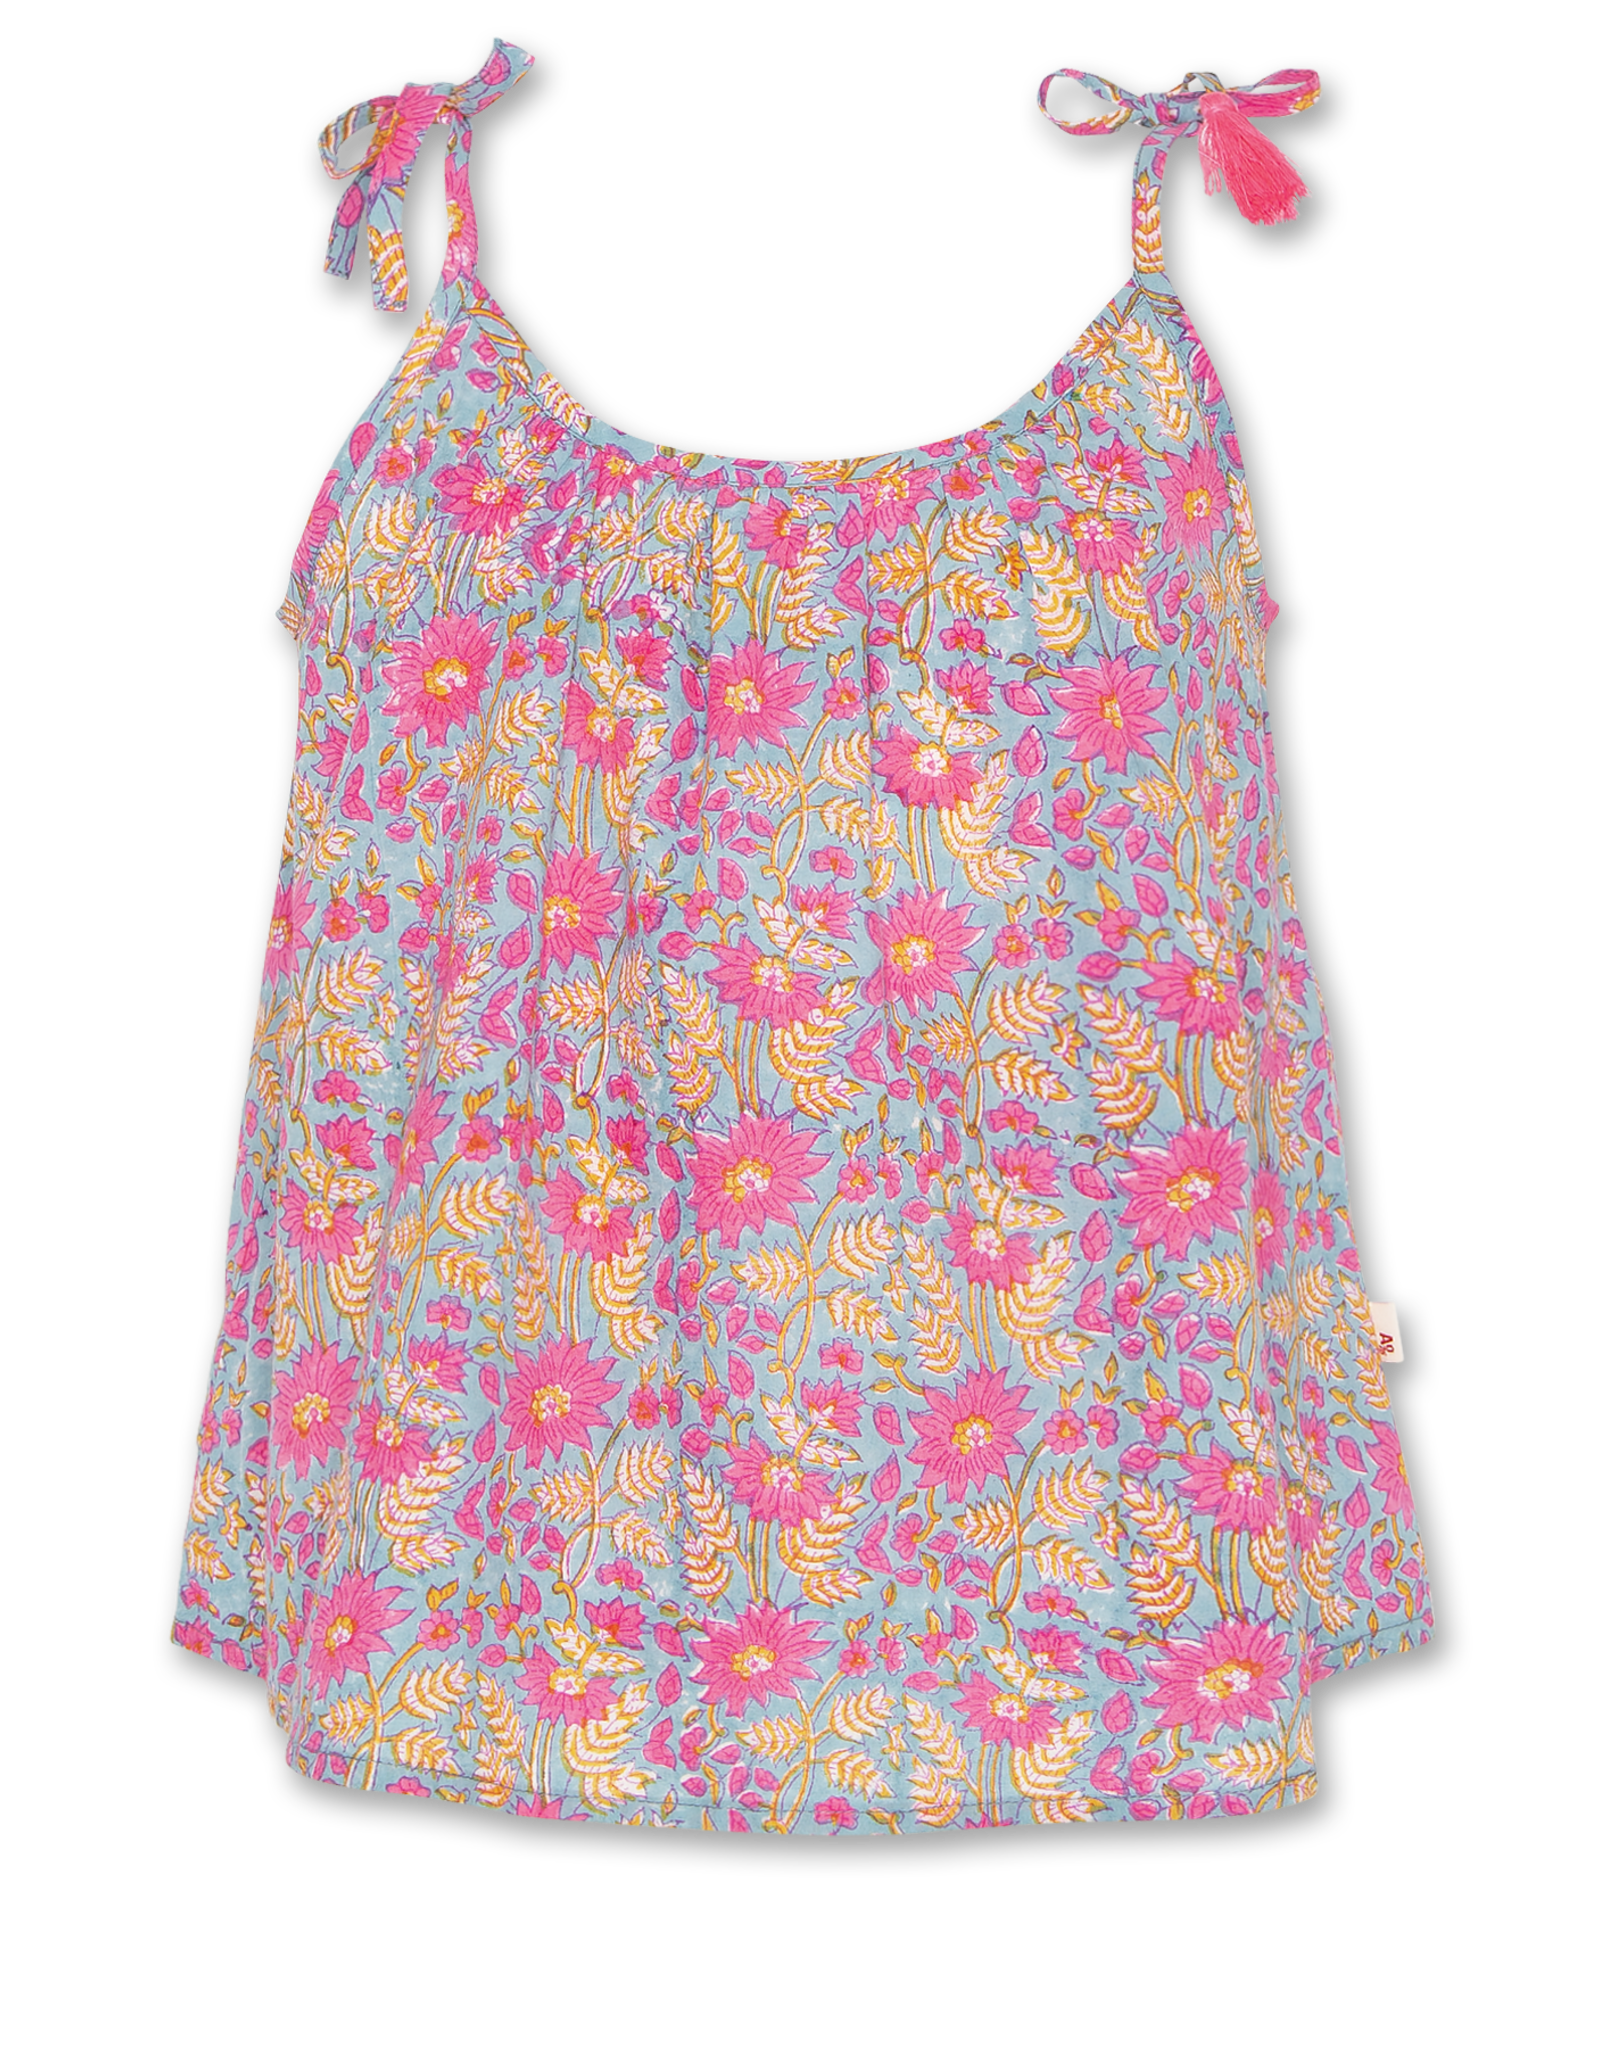 AMERICAN OUTFITTERS Ao76 Jacki Flower Top